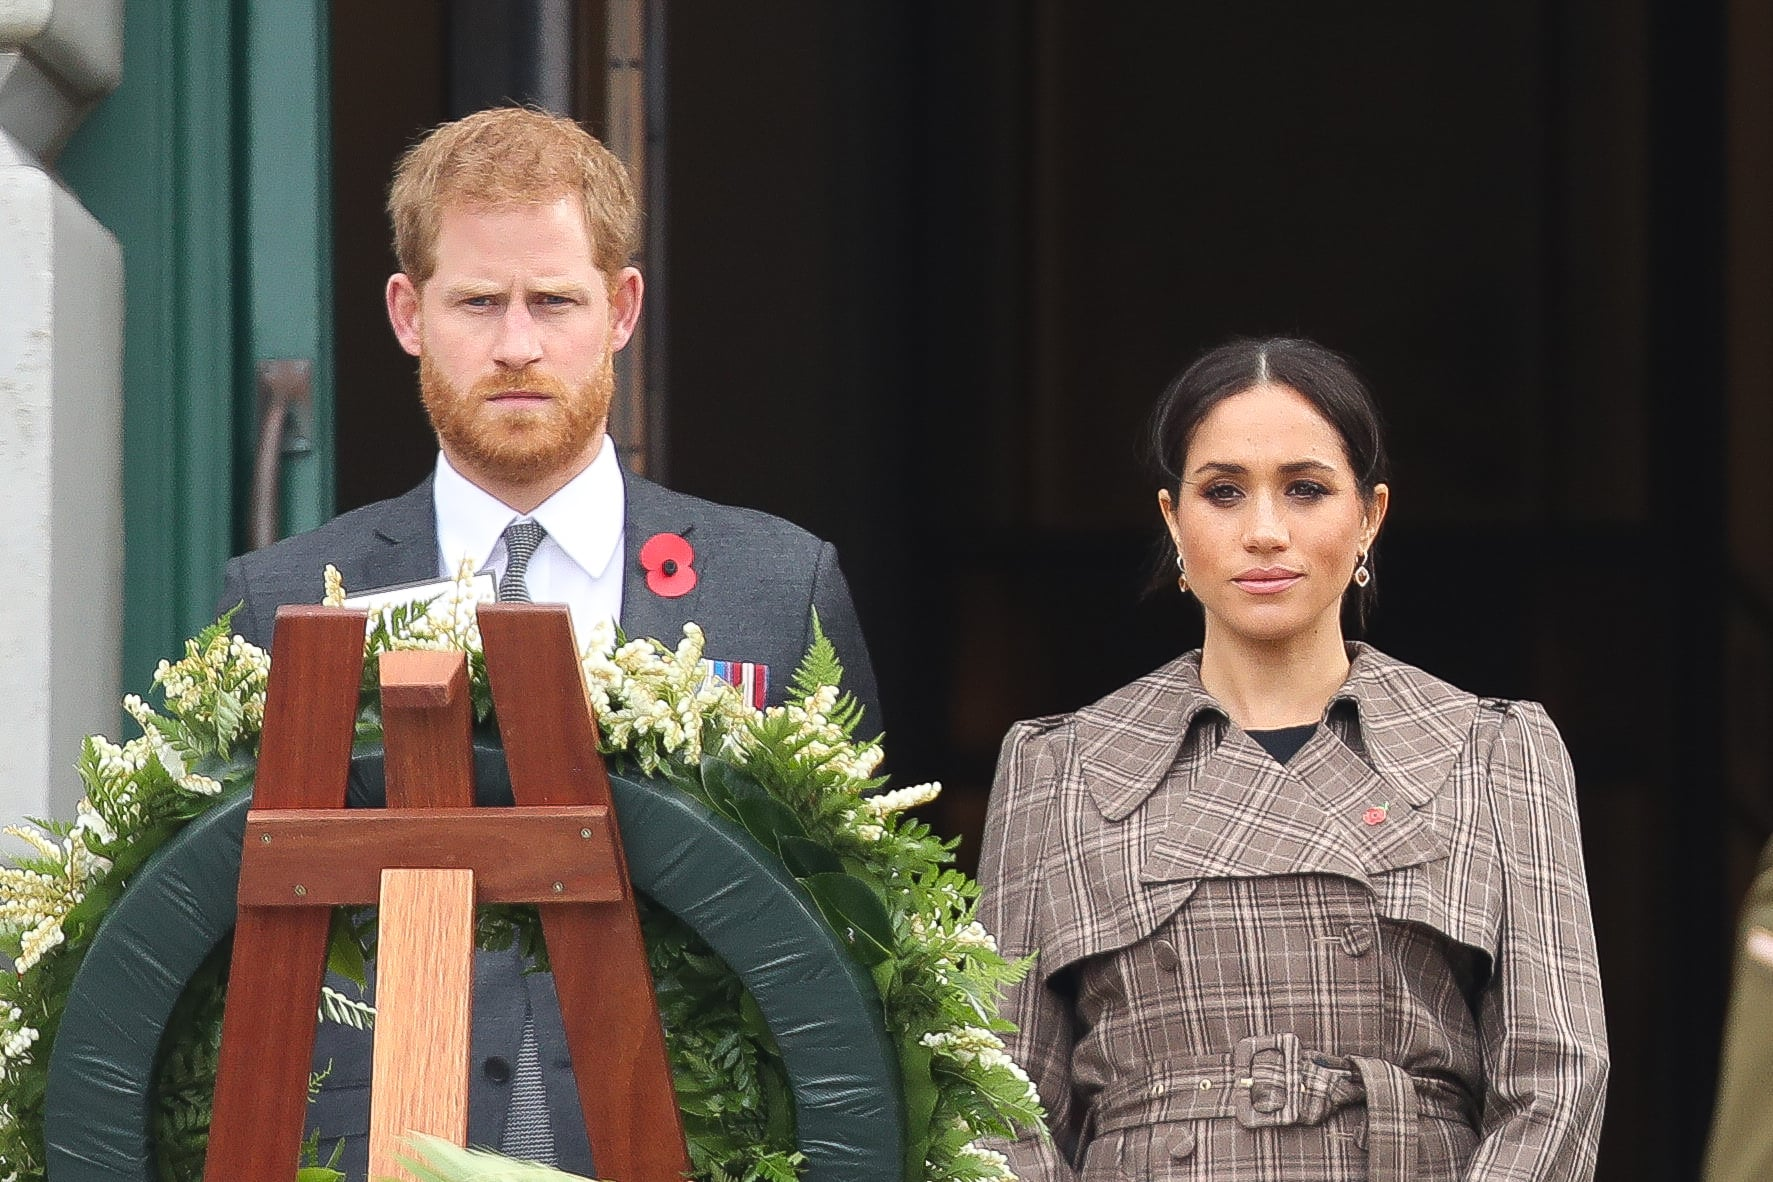 WELLINGTON, NEW ZEALAND - OCTOBER 28:  Prince Harry, Duke of Sussex and Meghan, Duchess of Sussex Laying Wreath at the National War Memorial on October 28, 2018 in Wellington, New Zealand. The Duke and Duchess of Sussex are on their official 16-day Autumn tour visiting cities in Australia, Fiji, Tonga and New Zealand.  (Photo by Chris Jackson/Getty Images)